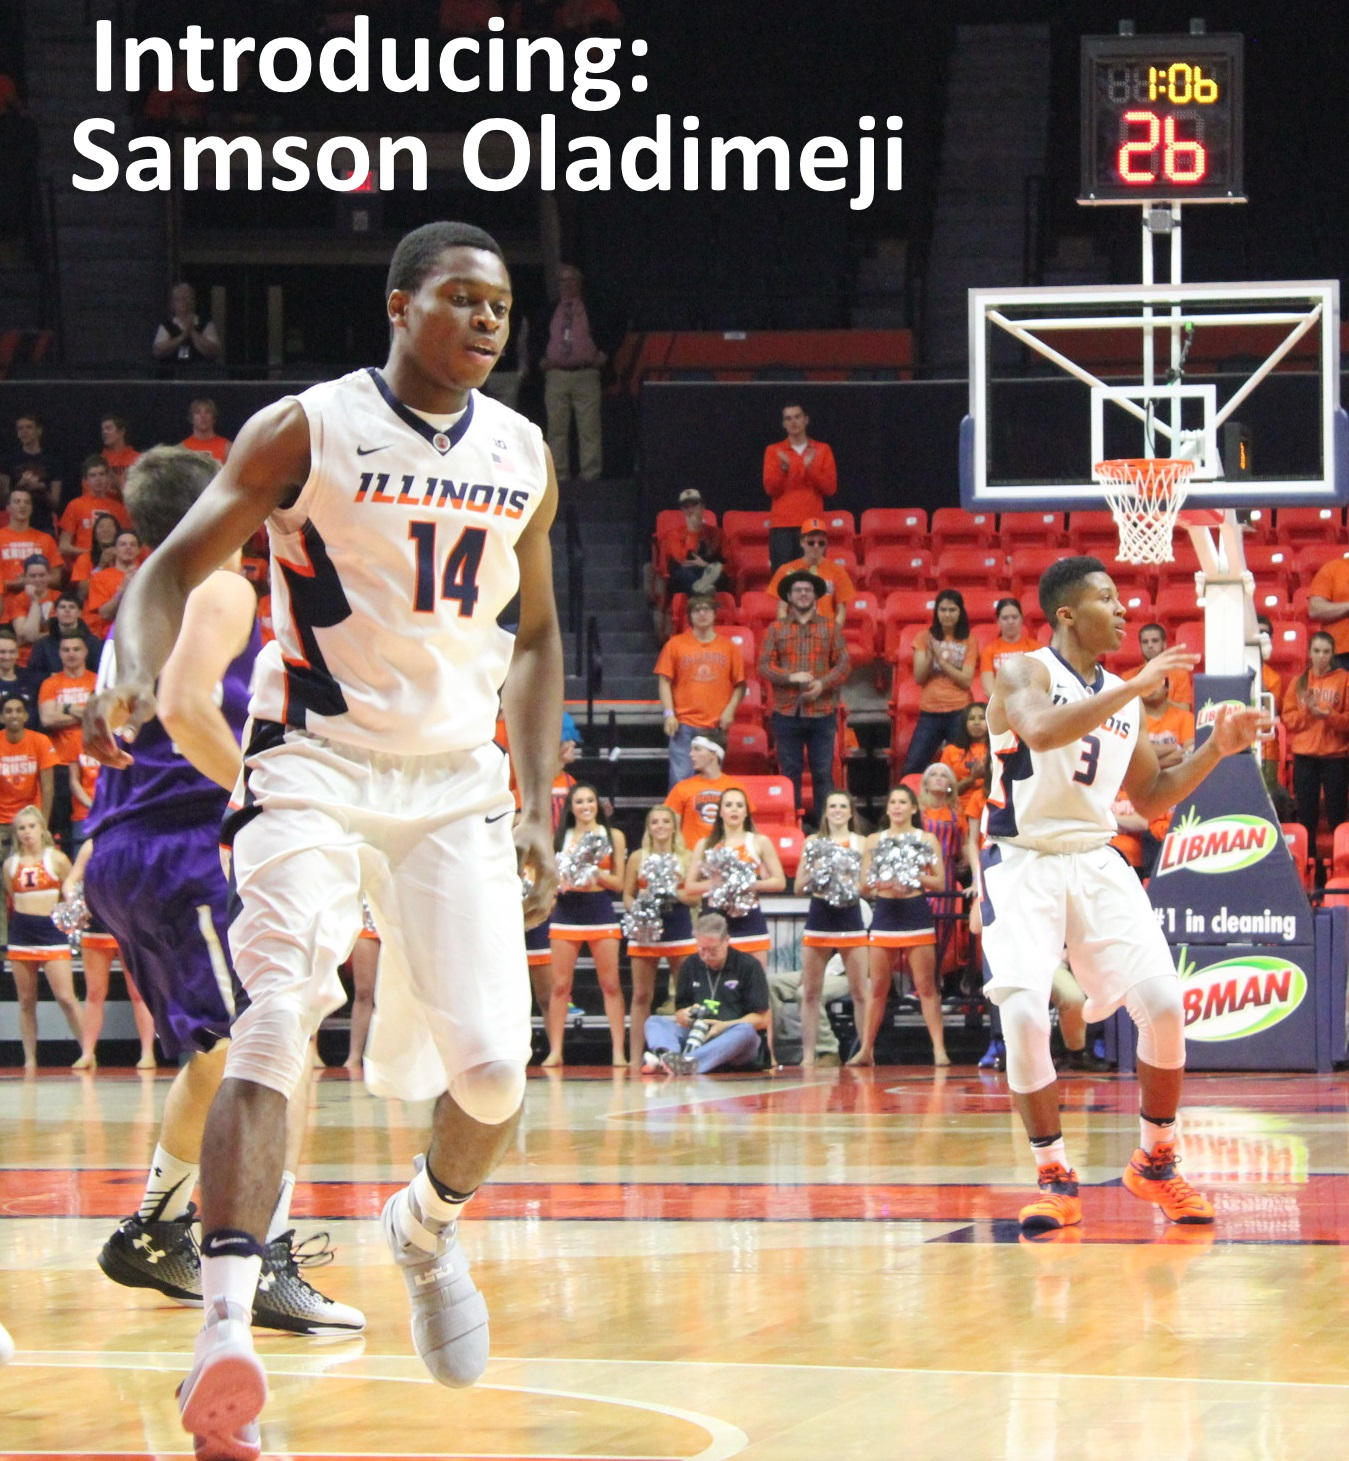 introducing-samson-oladimeji